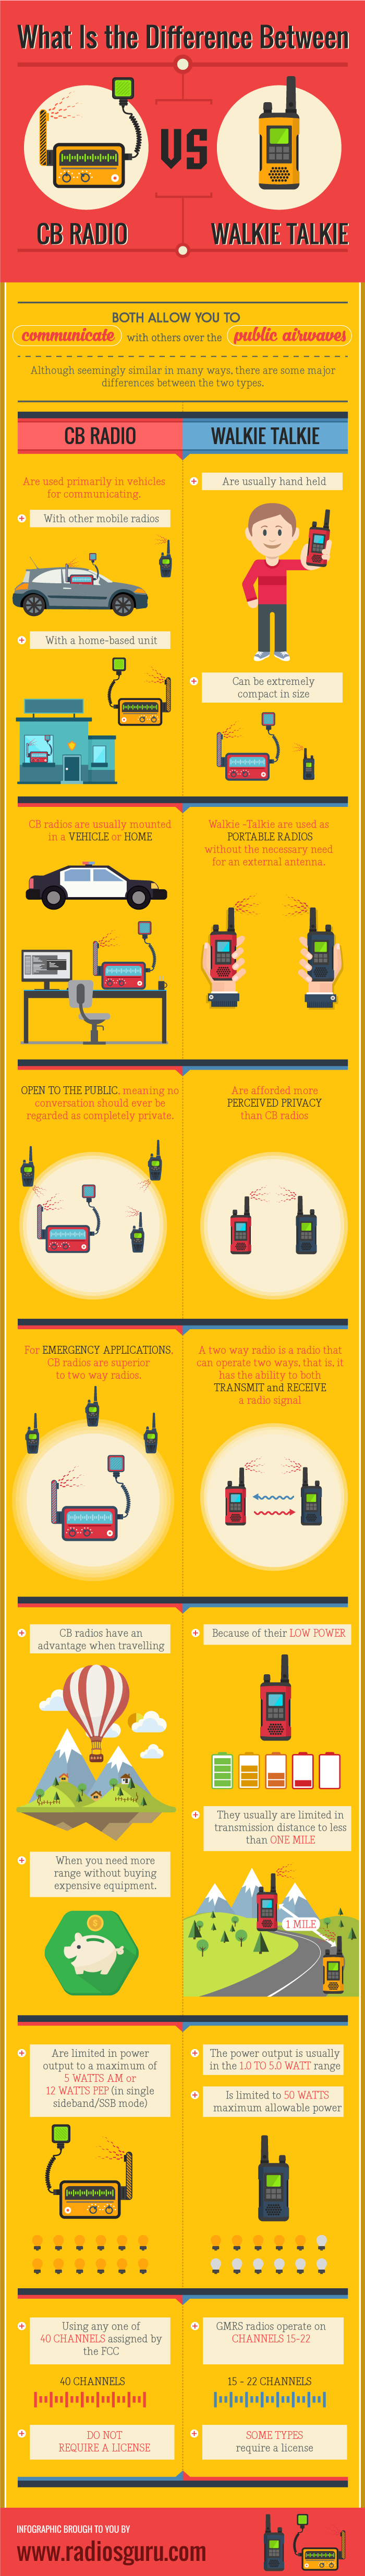 What-Is-the-Difference-Between-a-CB-a-Walkie-Talkie-infographic